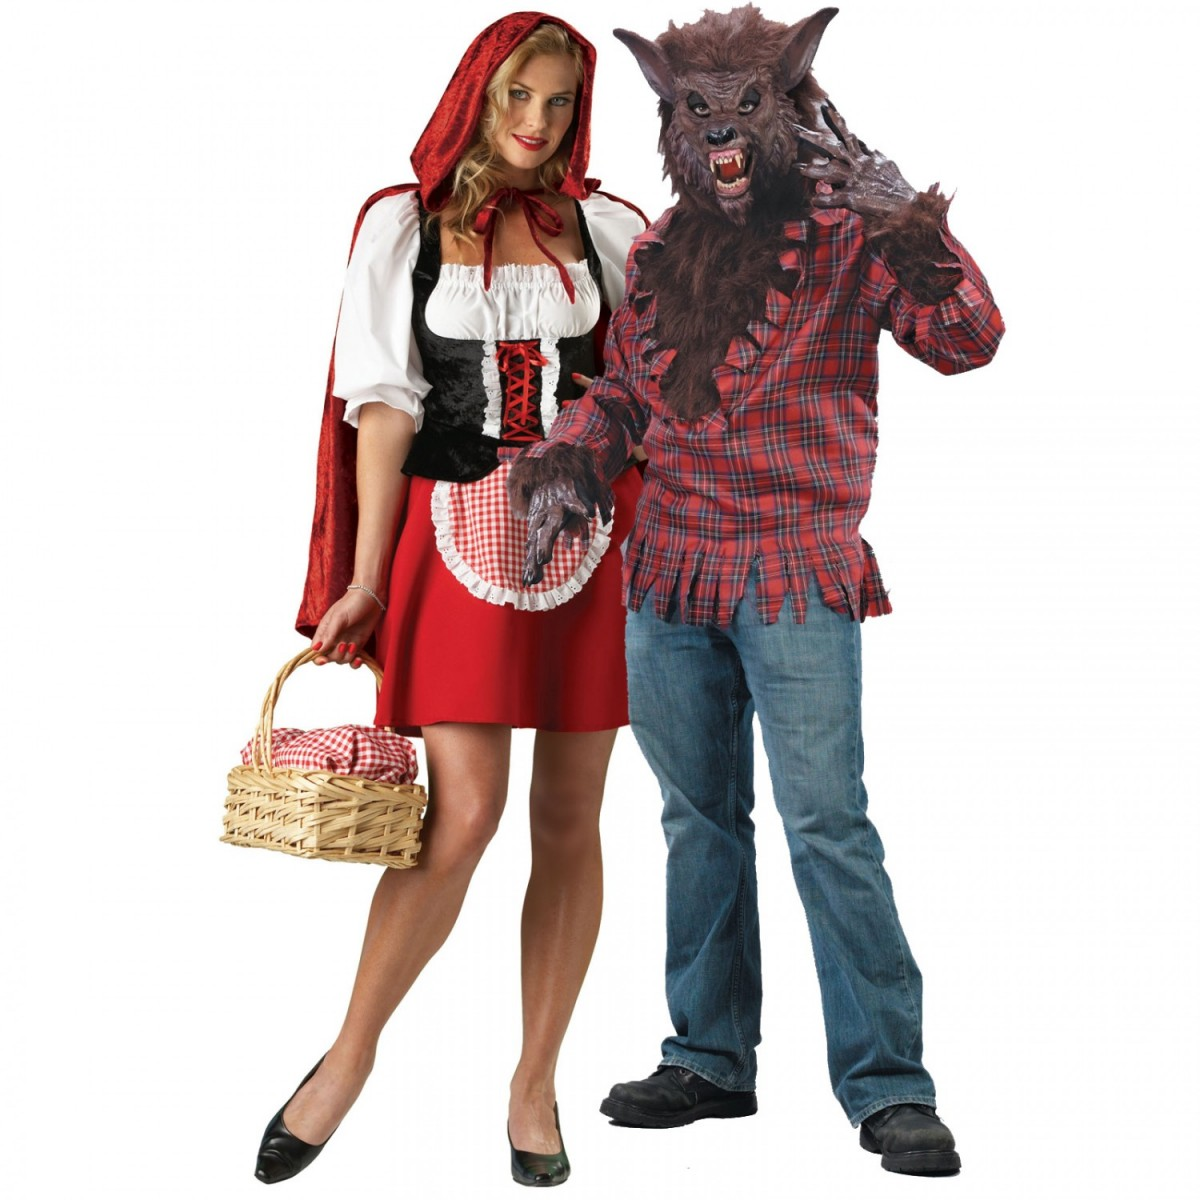 6 Cute Halloween Costumes for Couples - 29Secrets